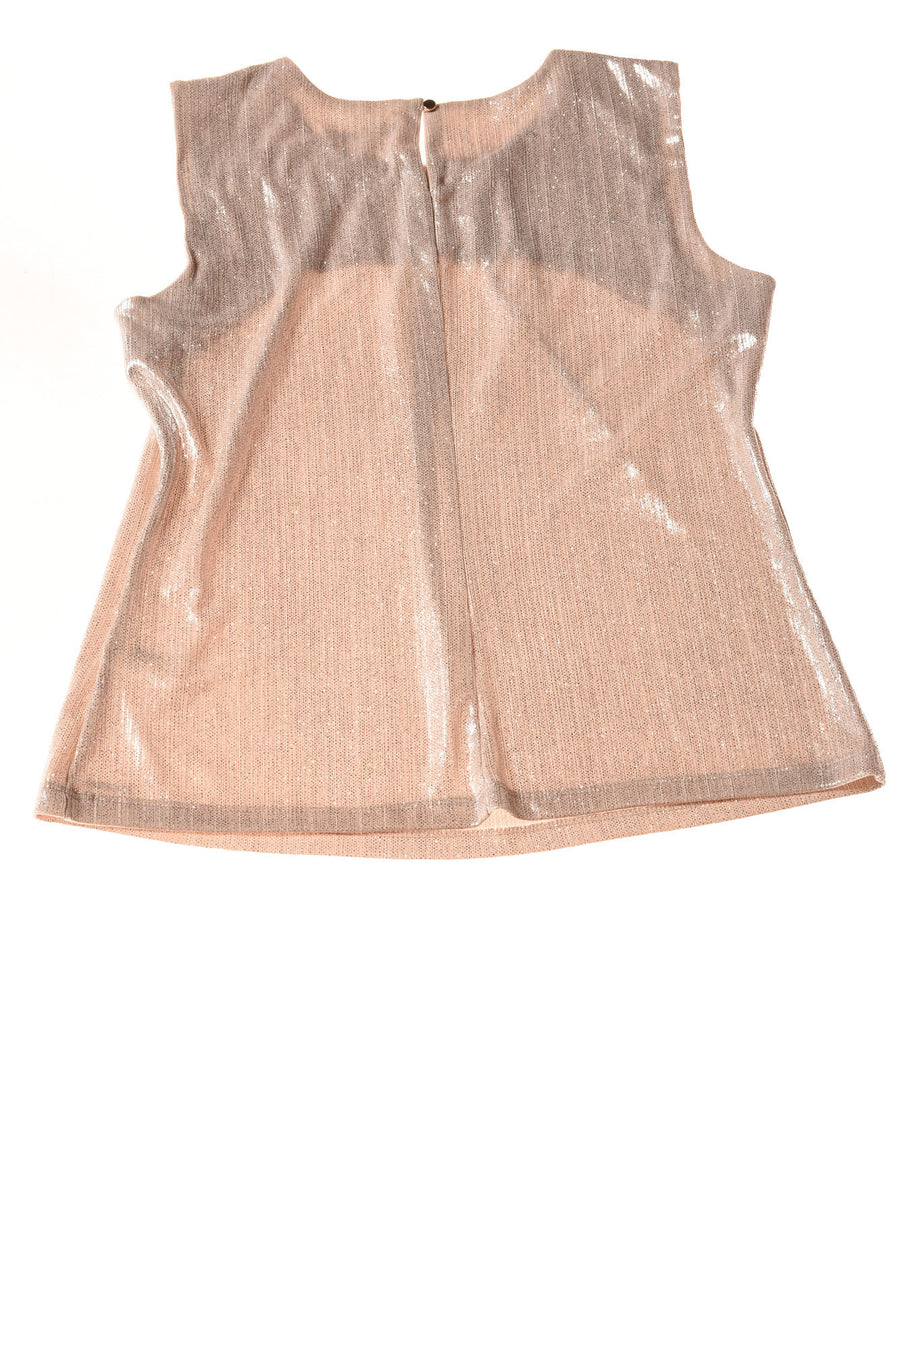 USED Calvin Klein Women's Top Medium Tan / Metallic